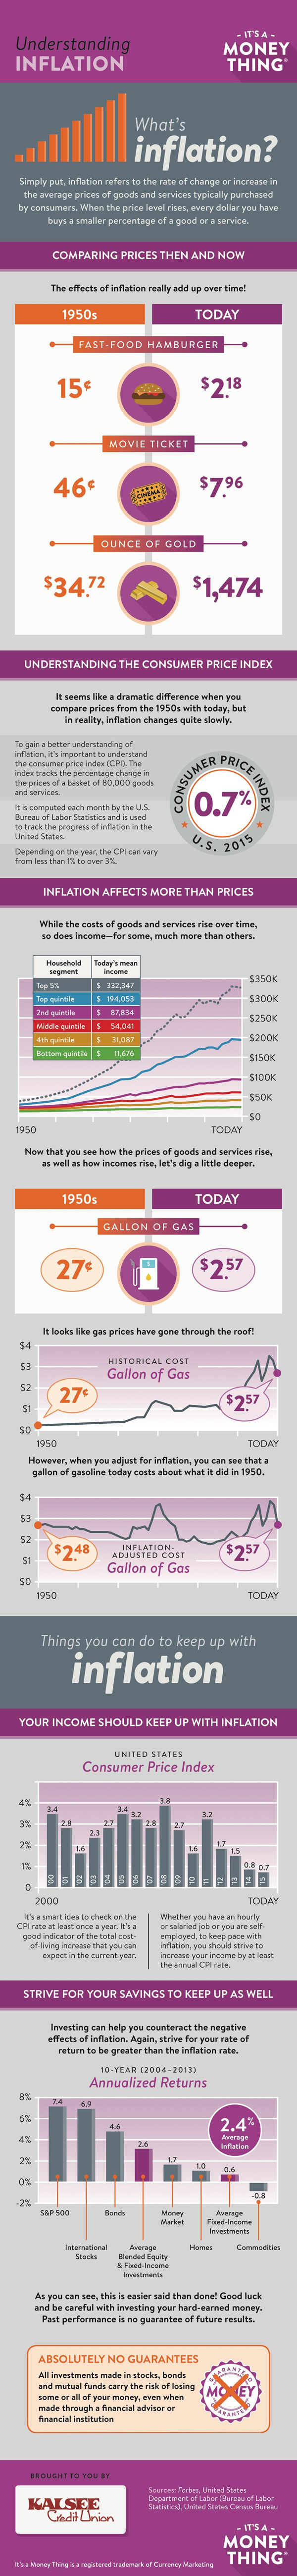 Understanding inflation infographic, click for transcription